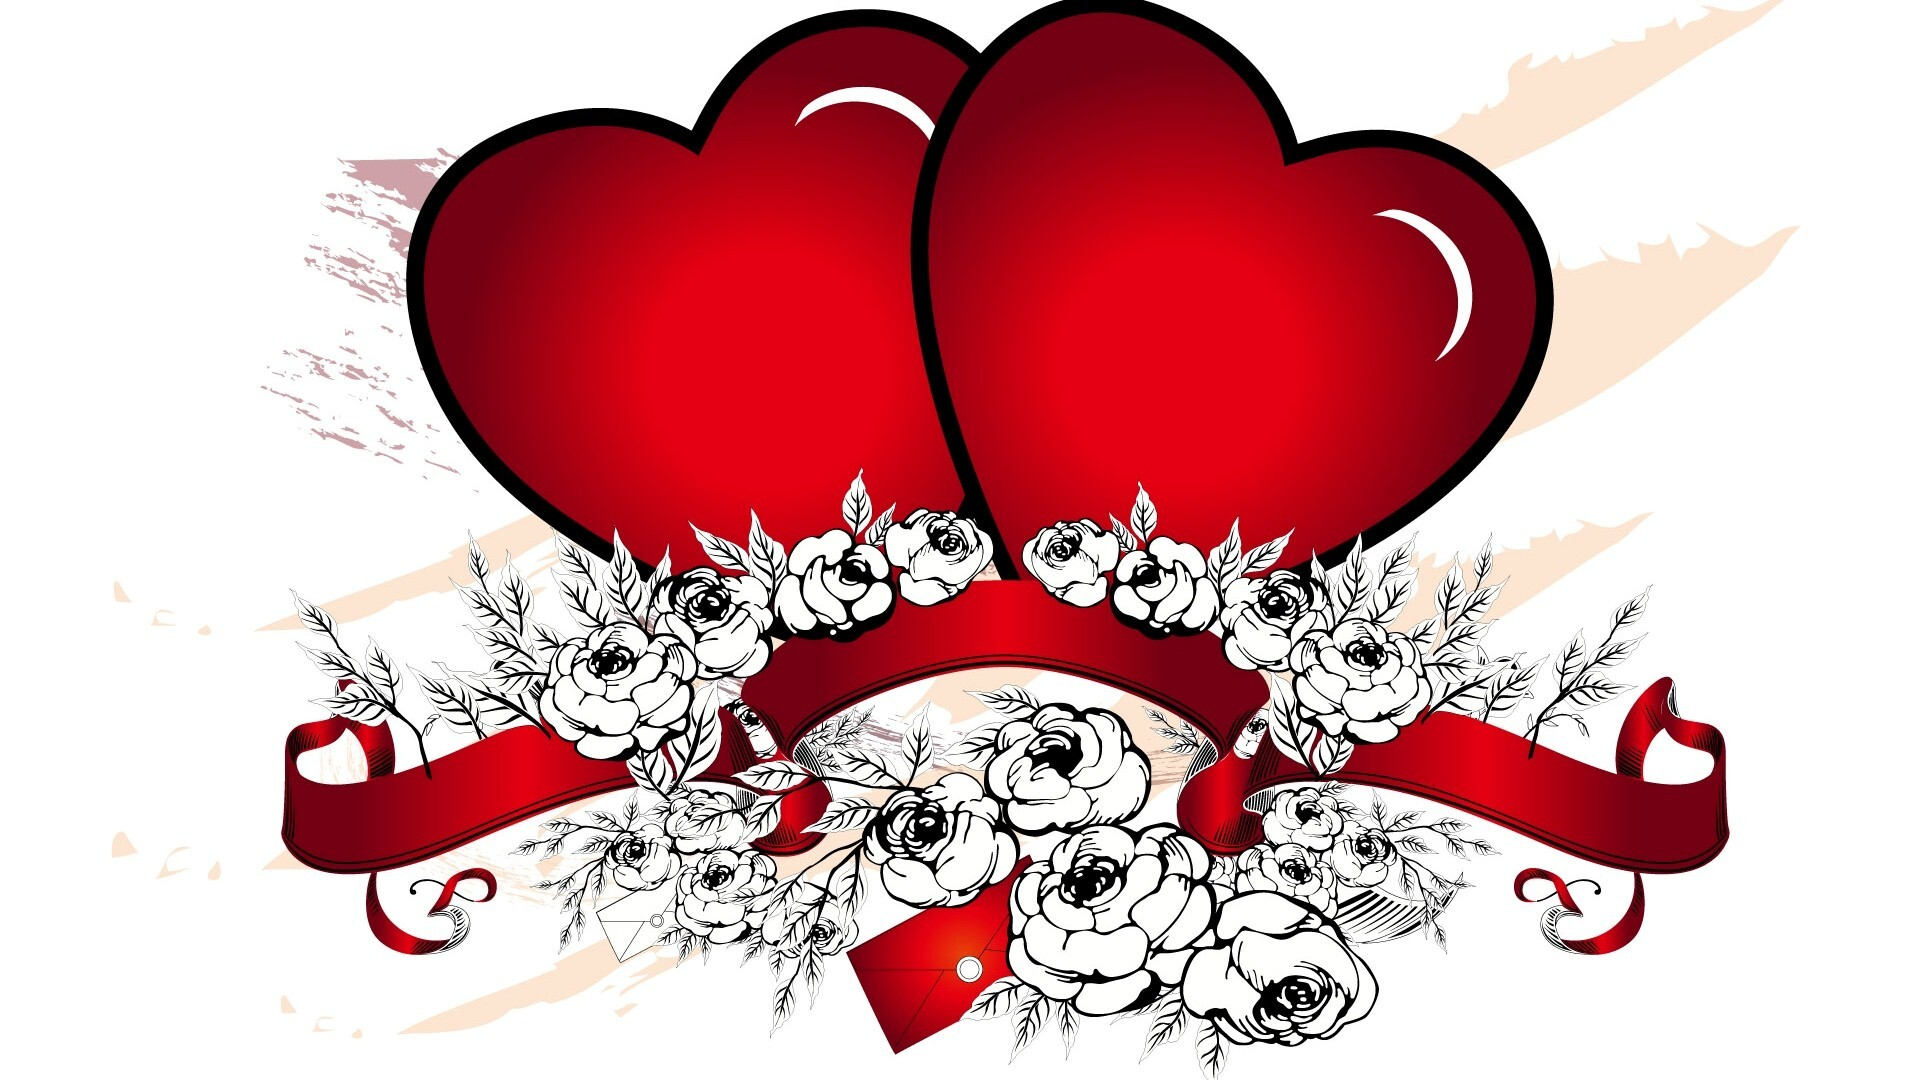 Beautiful two red heart vector design hd laptop background for Love in design